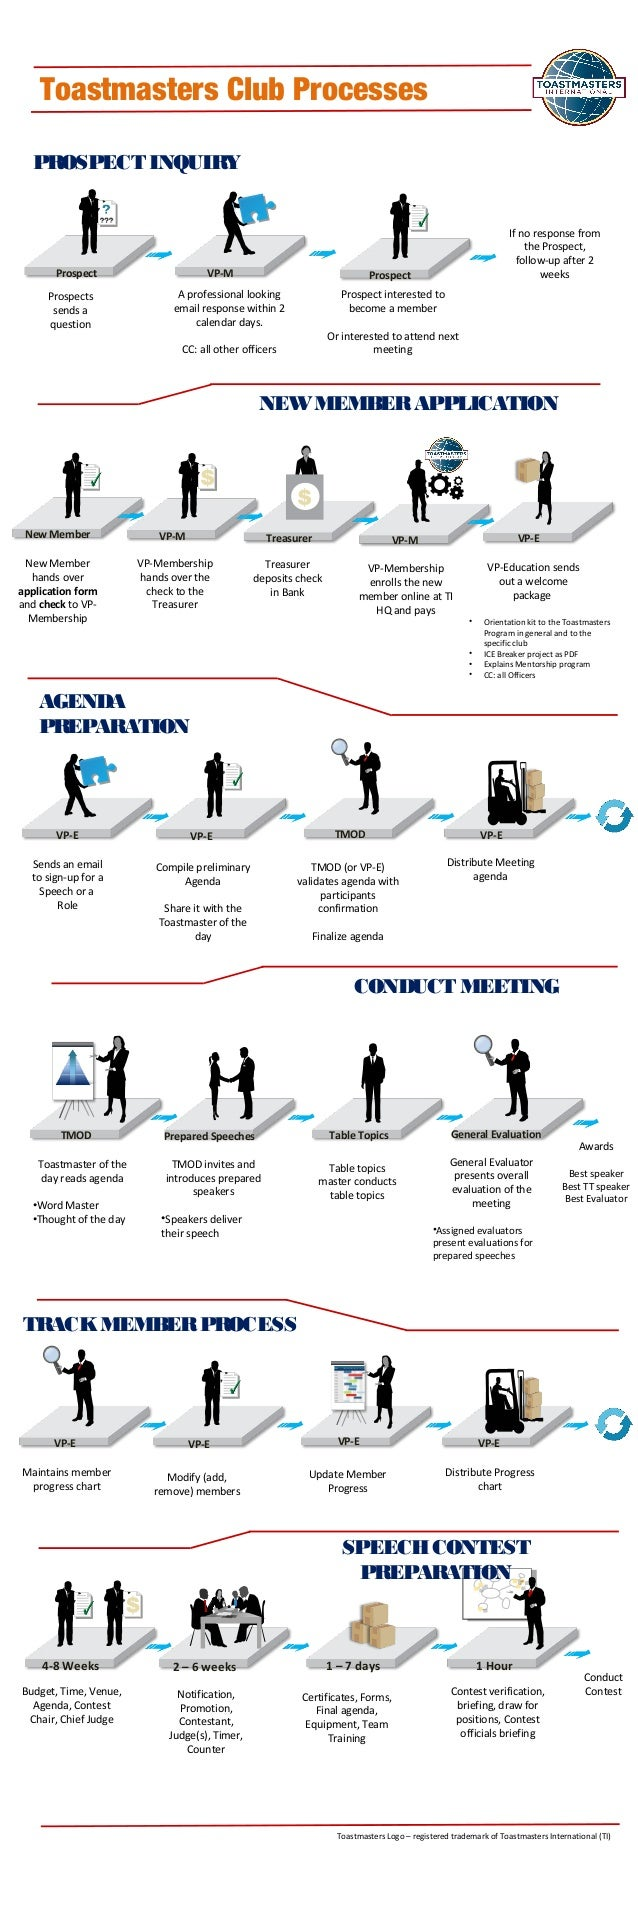 Toastmasters club process diagrams